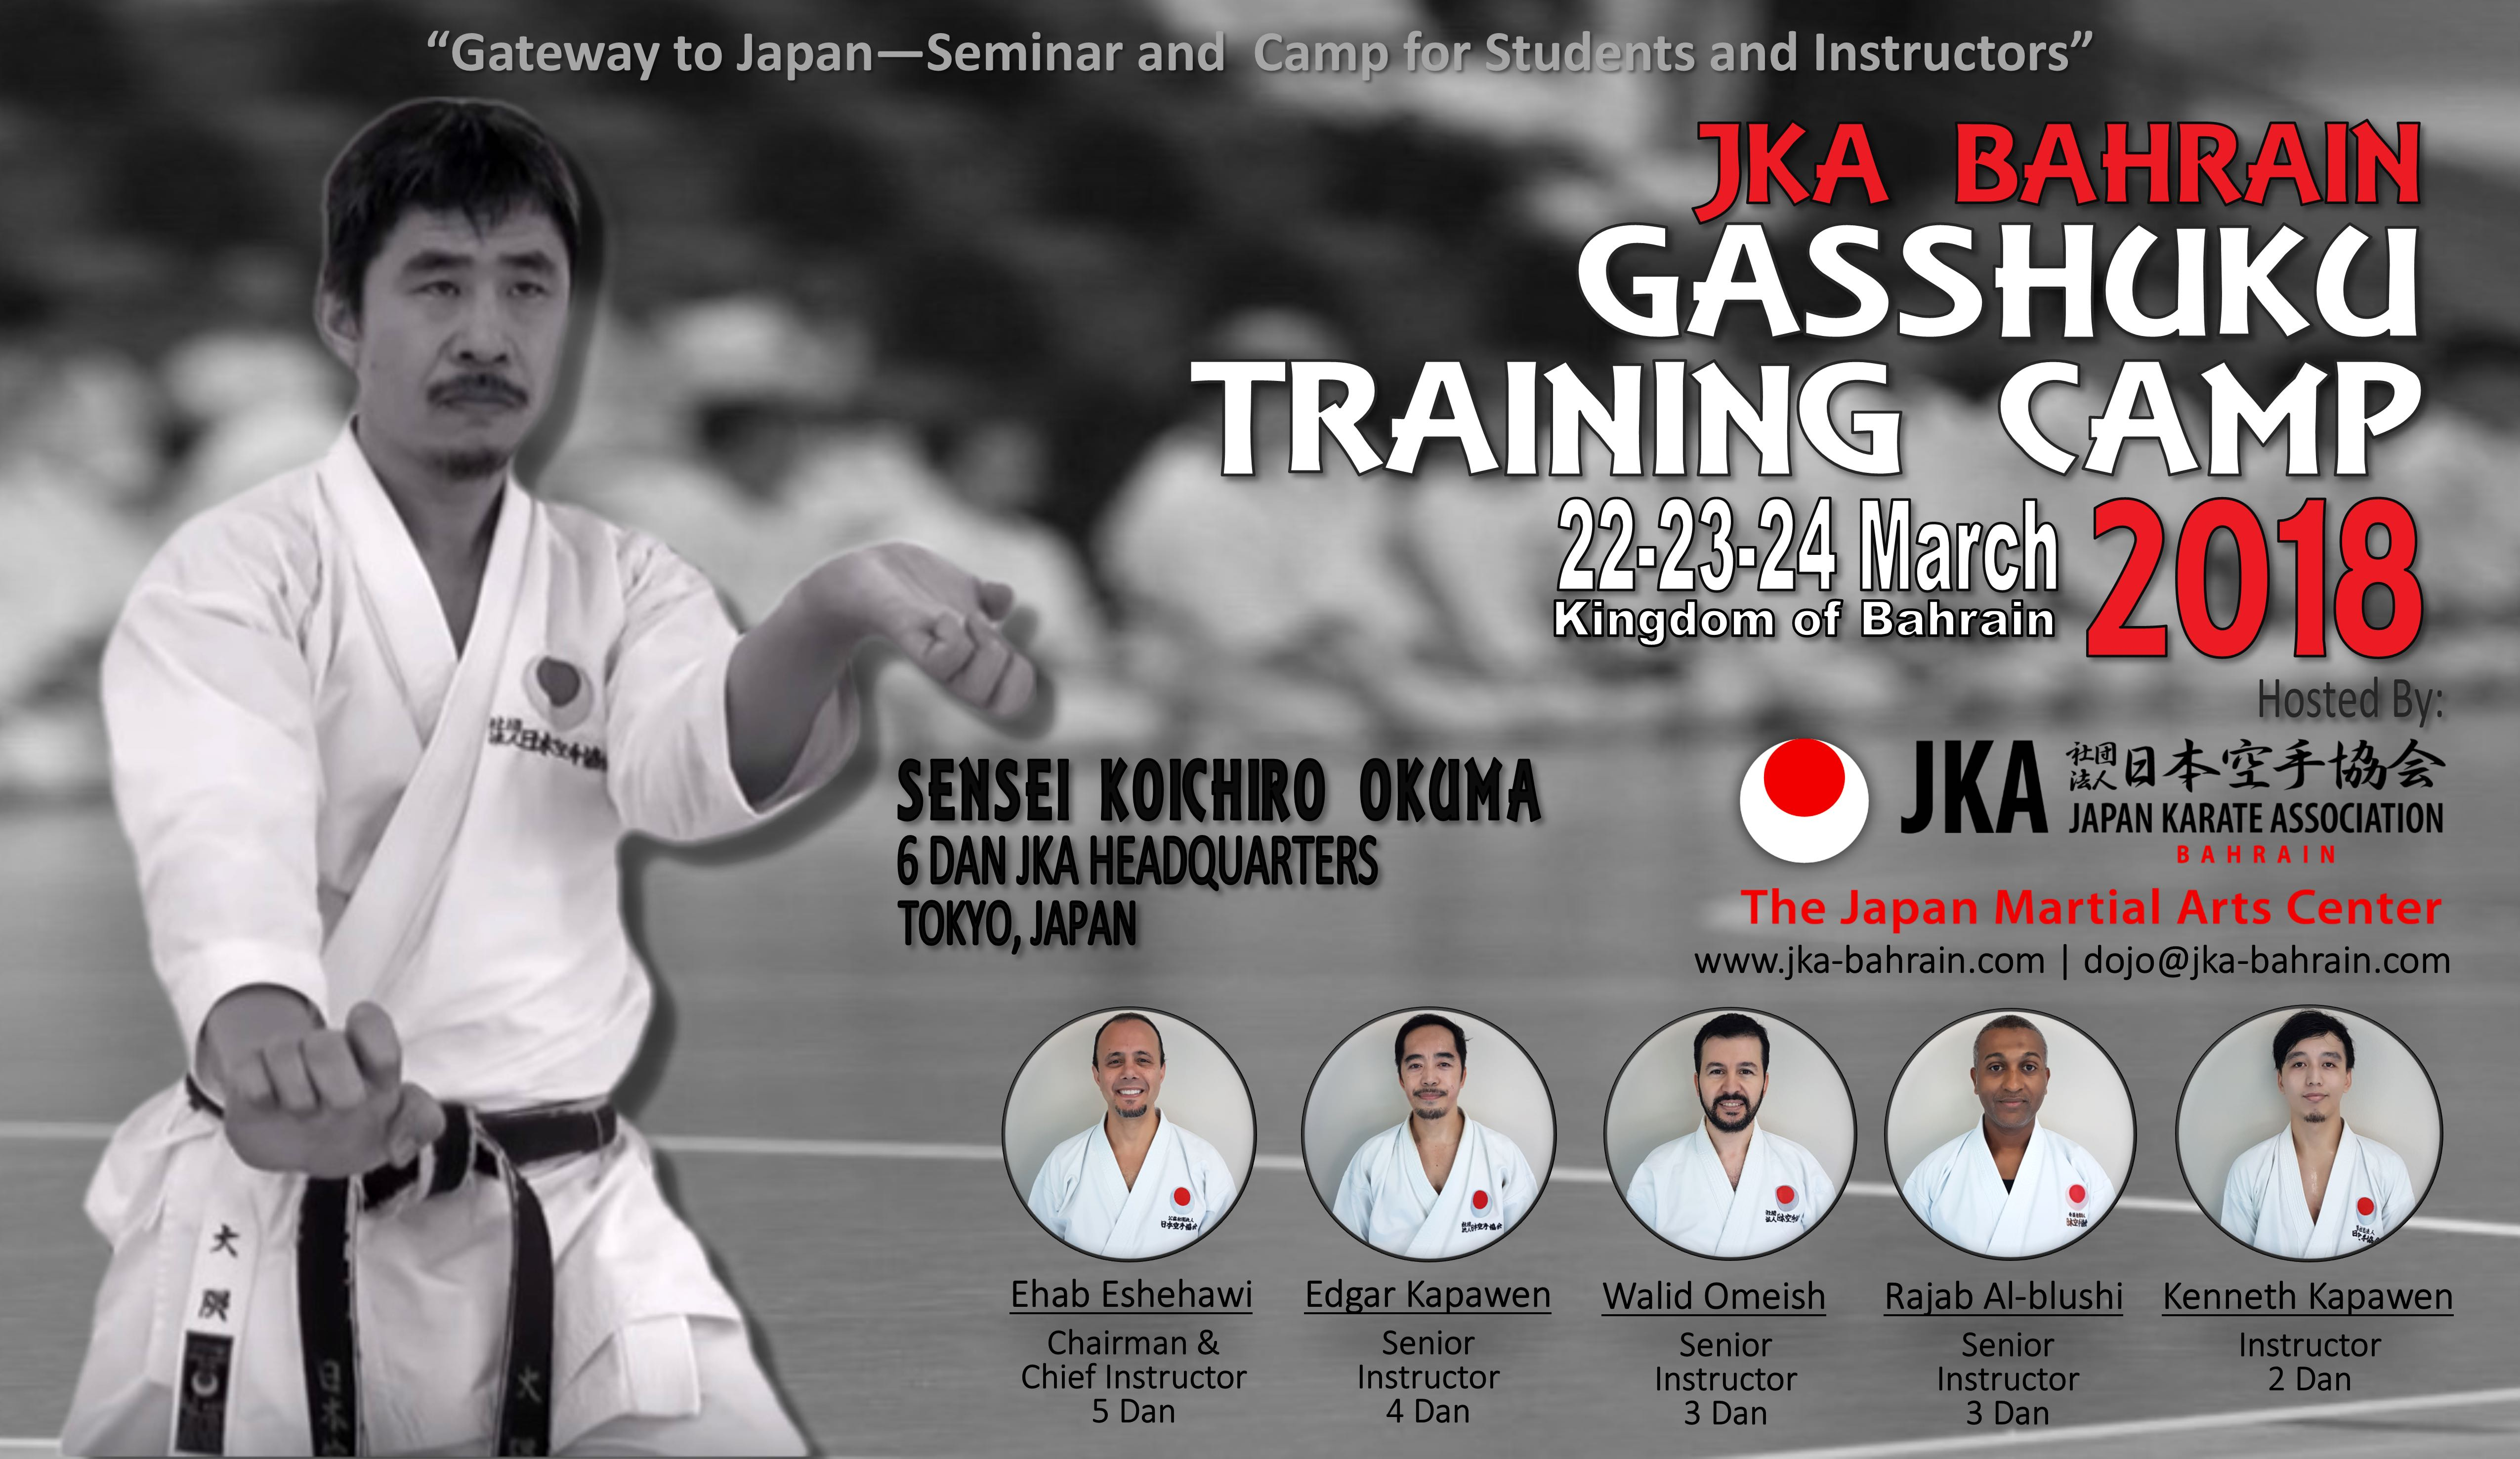 JKA Bahrain 2018 Gasshuku Training Camp